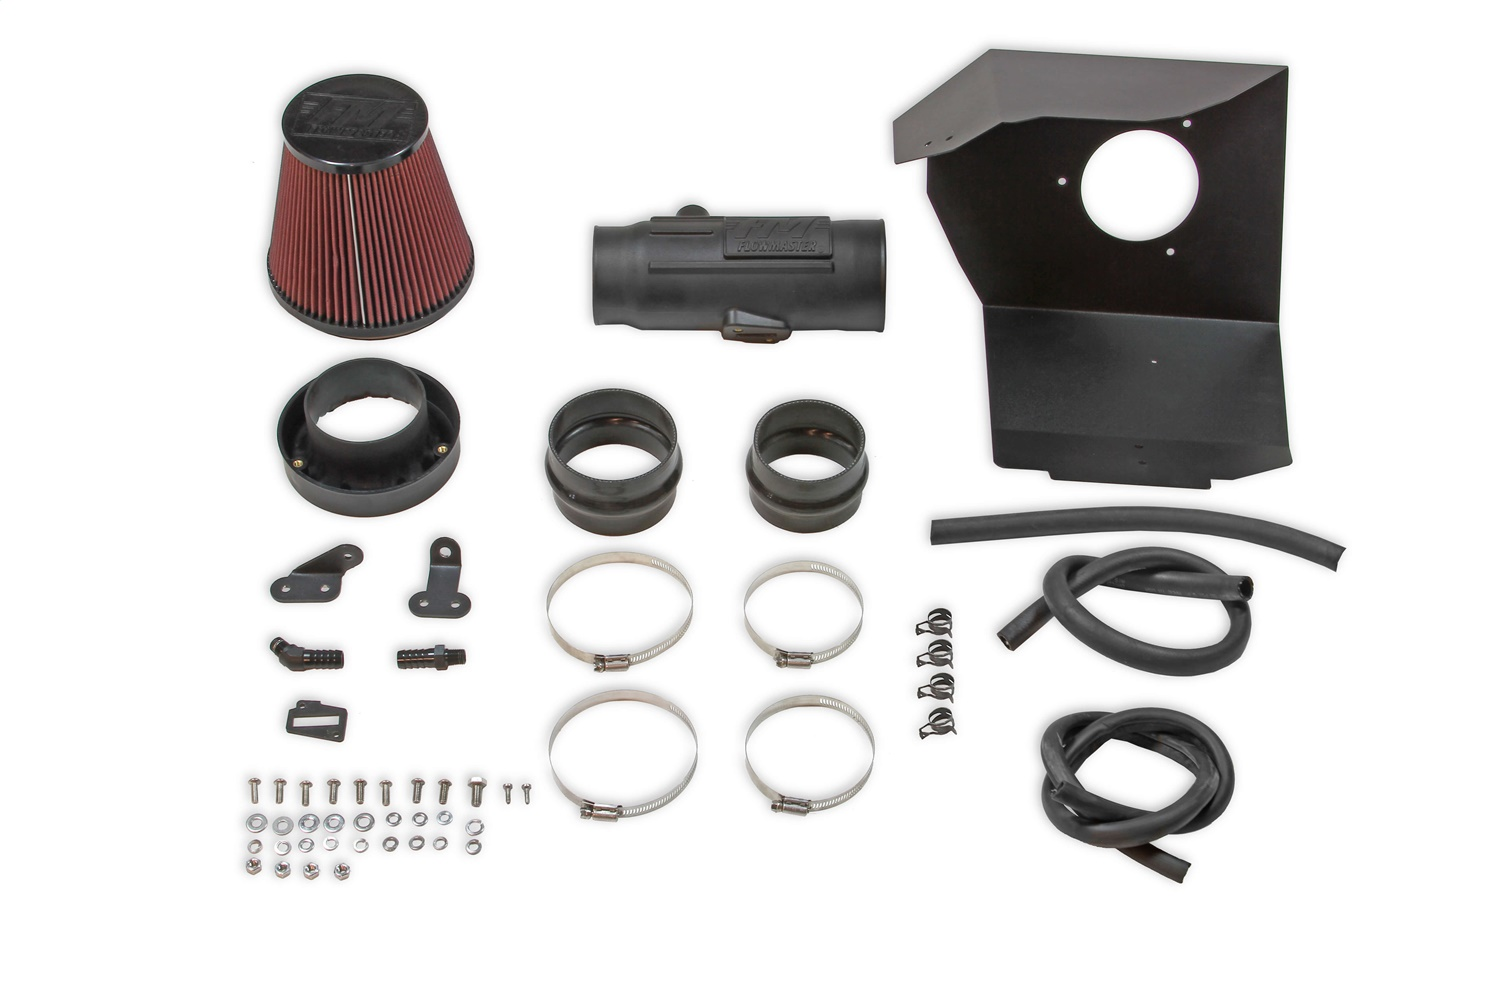 Flowmaster 615198 Delta Force Cold Air Intake Kit Fits 17-19 Titan